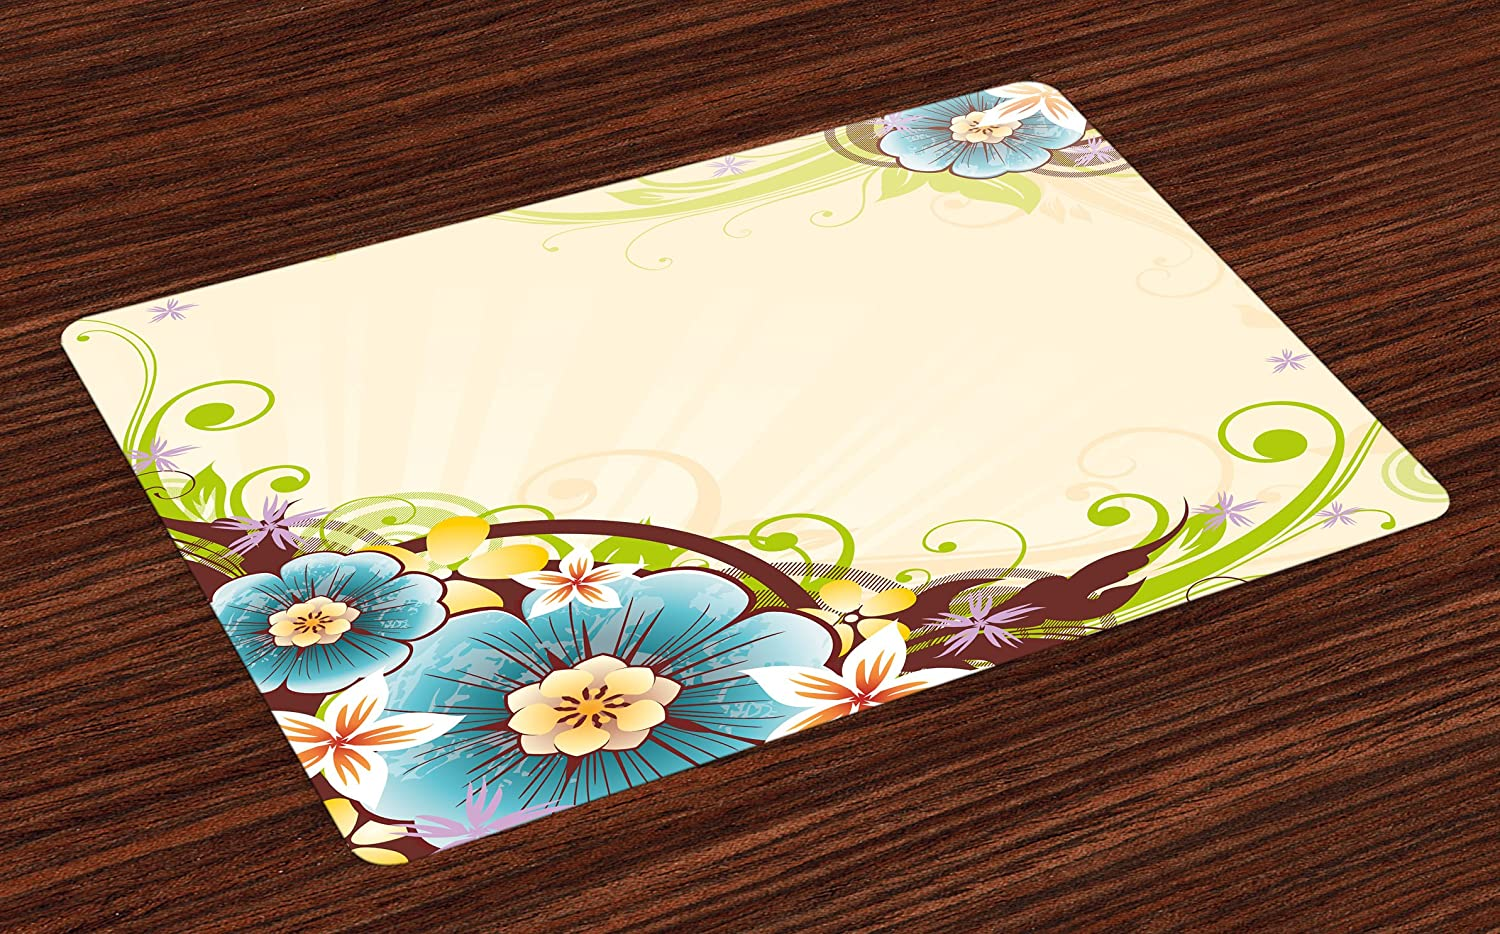 Lunarable Floral Place Mats Set of 4, Striped Background with Flower Bouquets on Corners Spring Blossoms Artwork Print, Washable Fabric Placemats for Dining Room Kitchen Table Decor, Multicolor